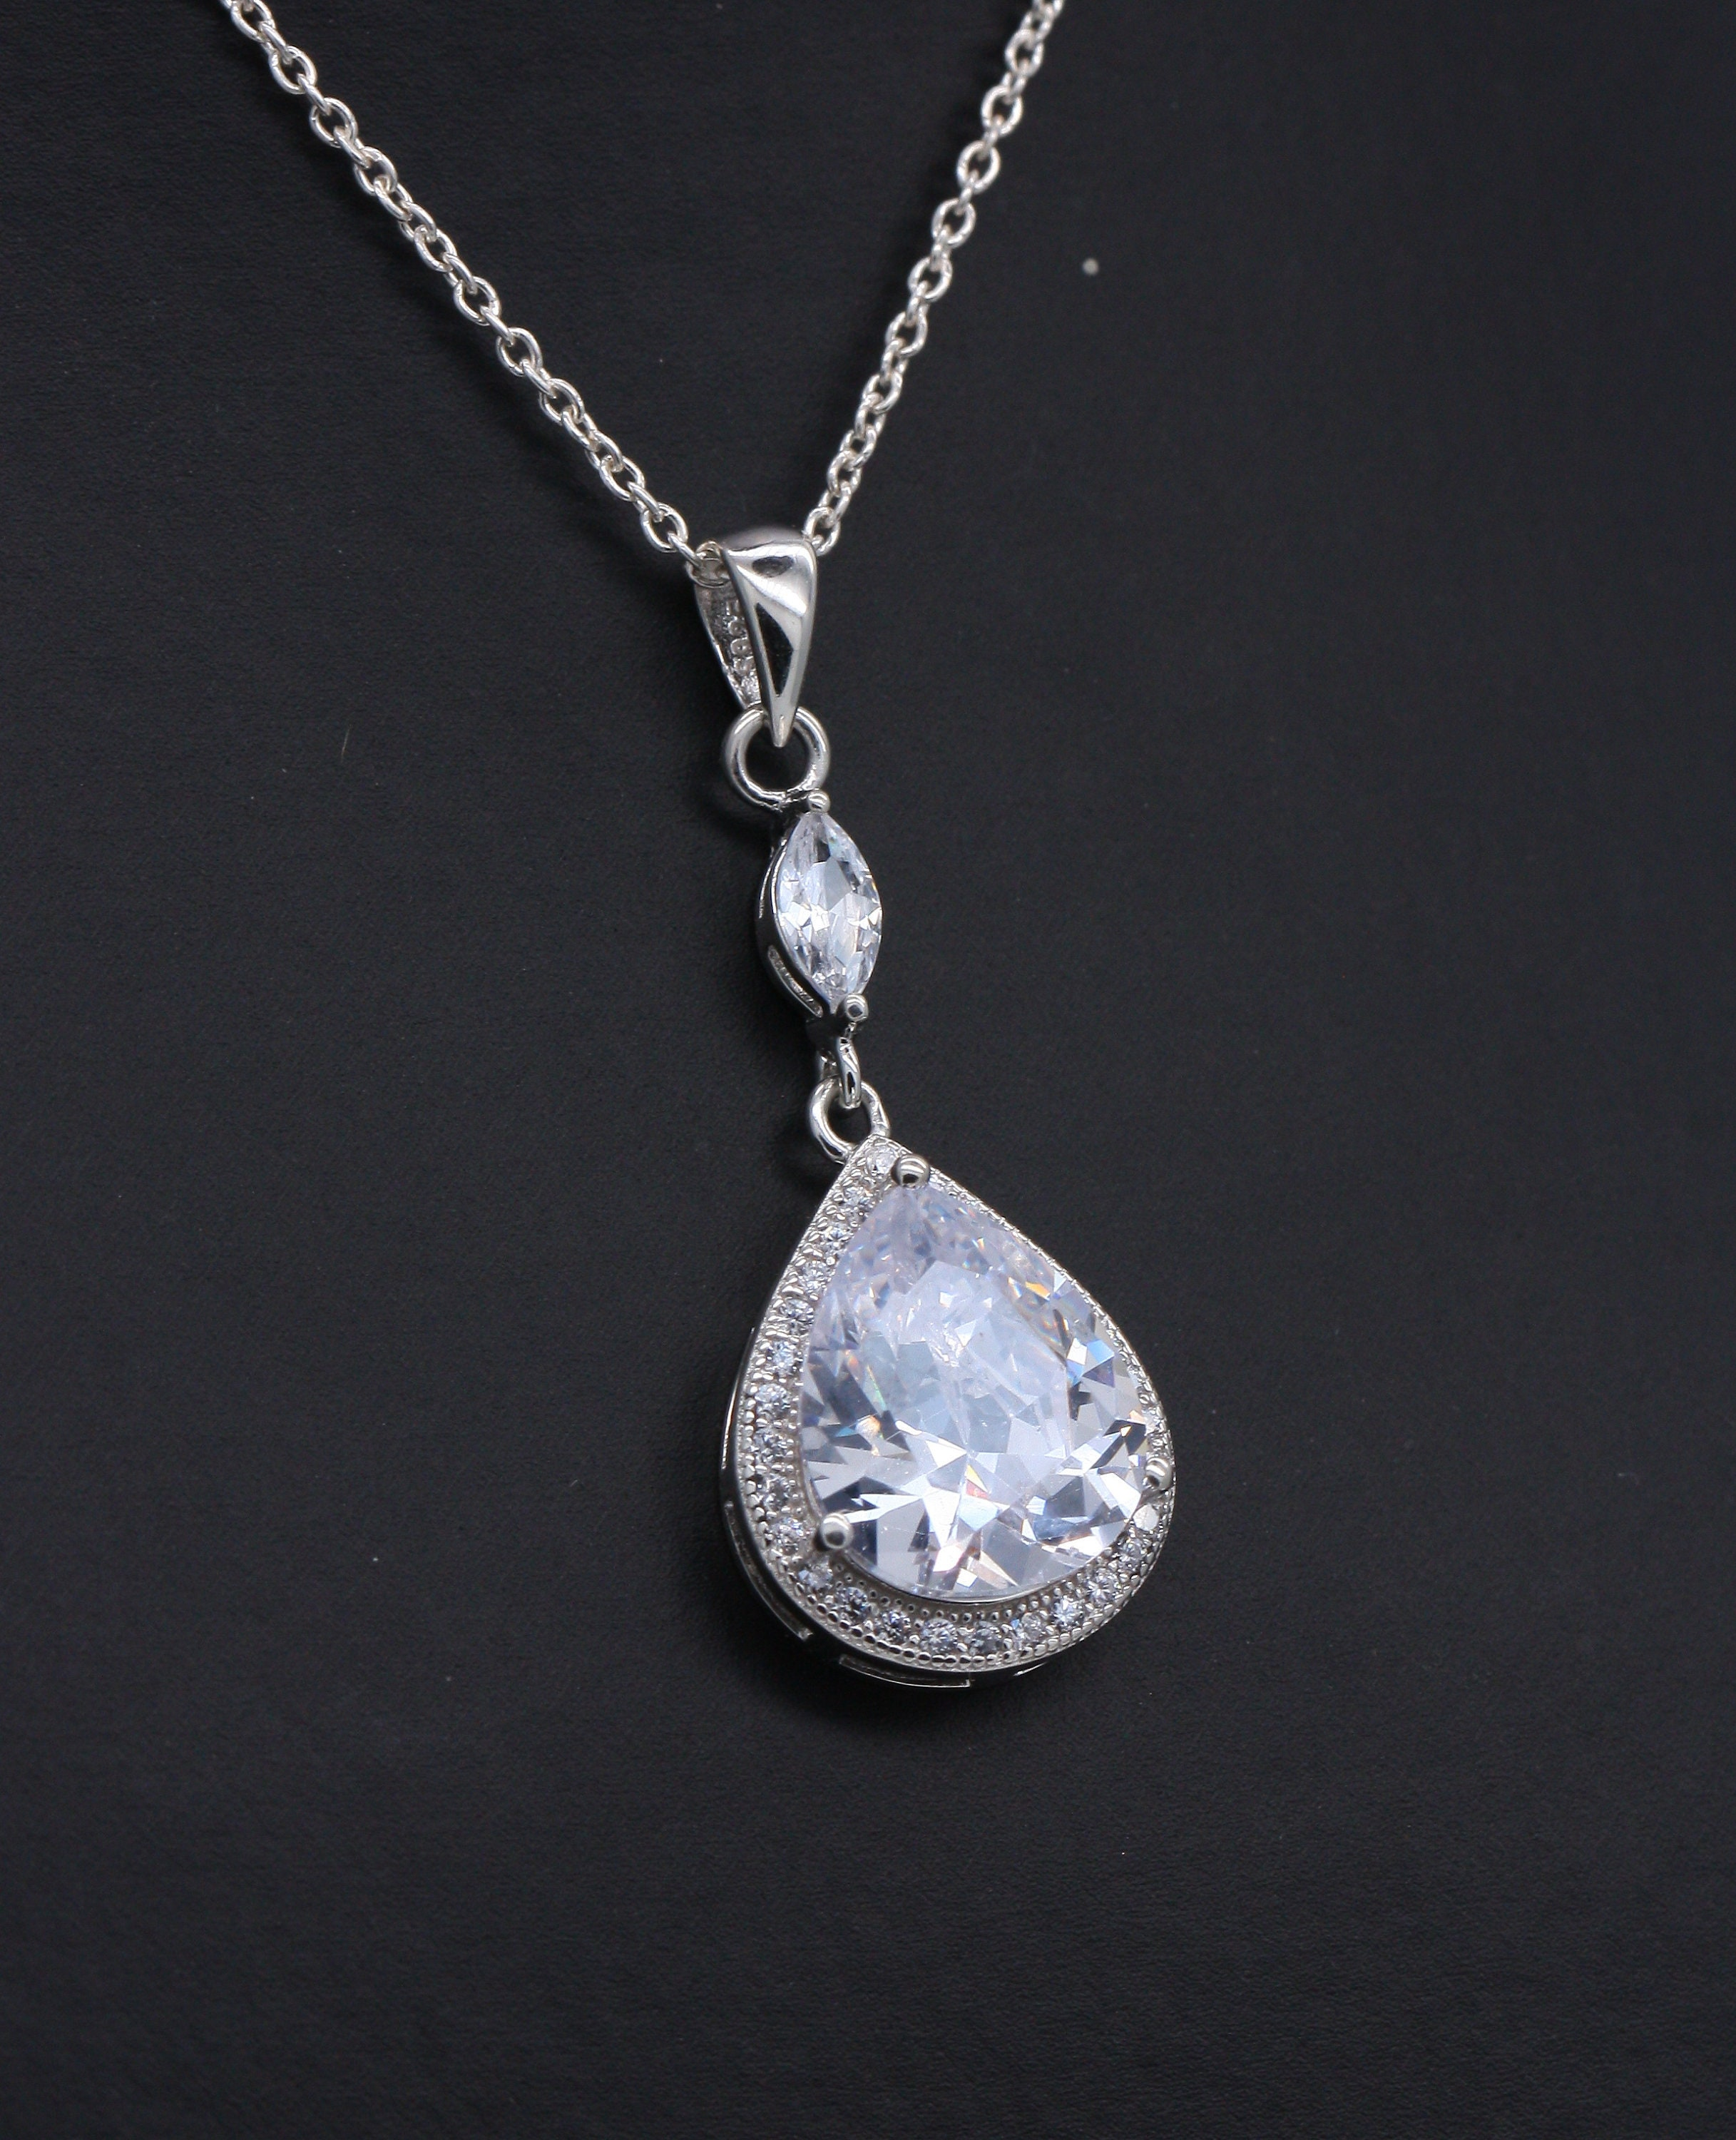 925 Sterling Silver Bicycle Necklace with Zircon Stone